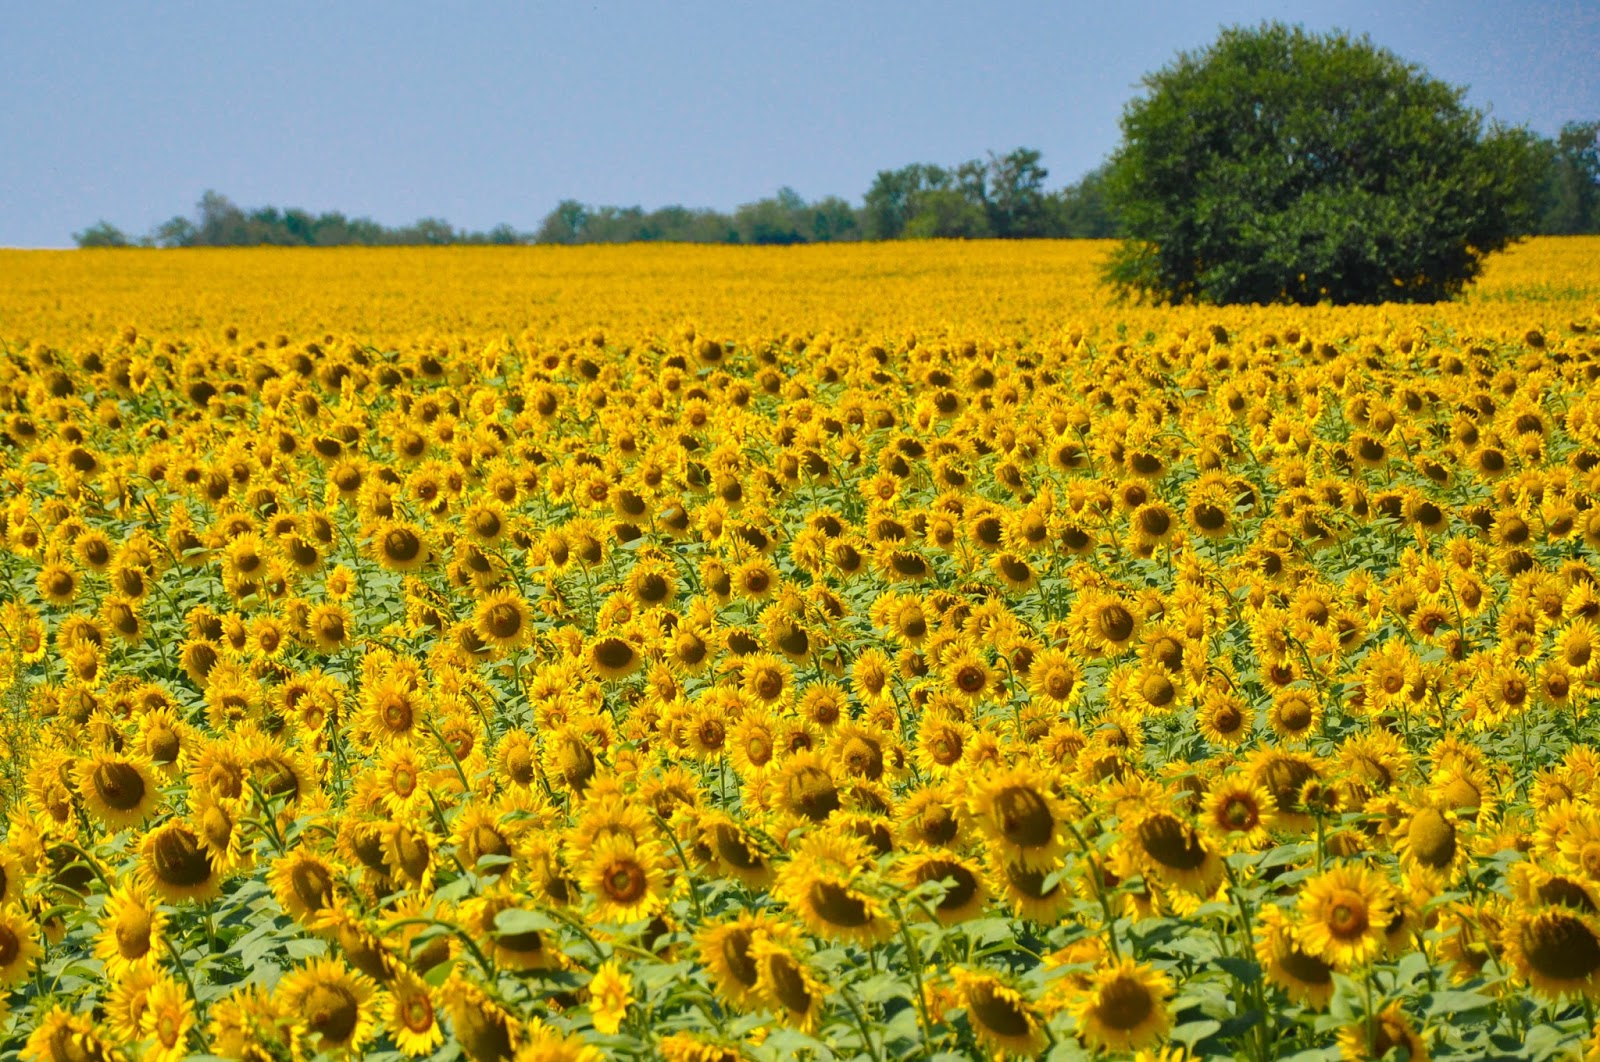 A sunflower field just outside Varna in Bulgaria